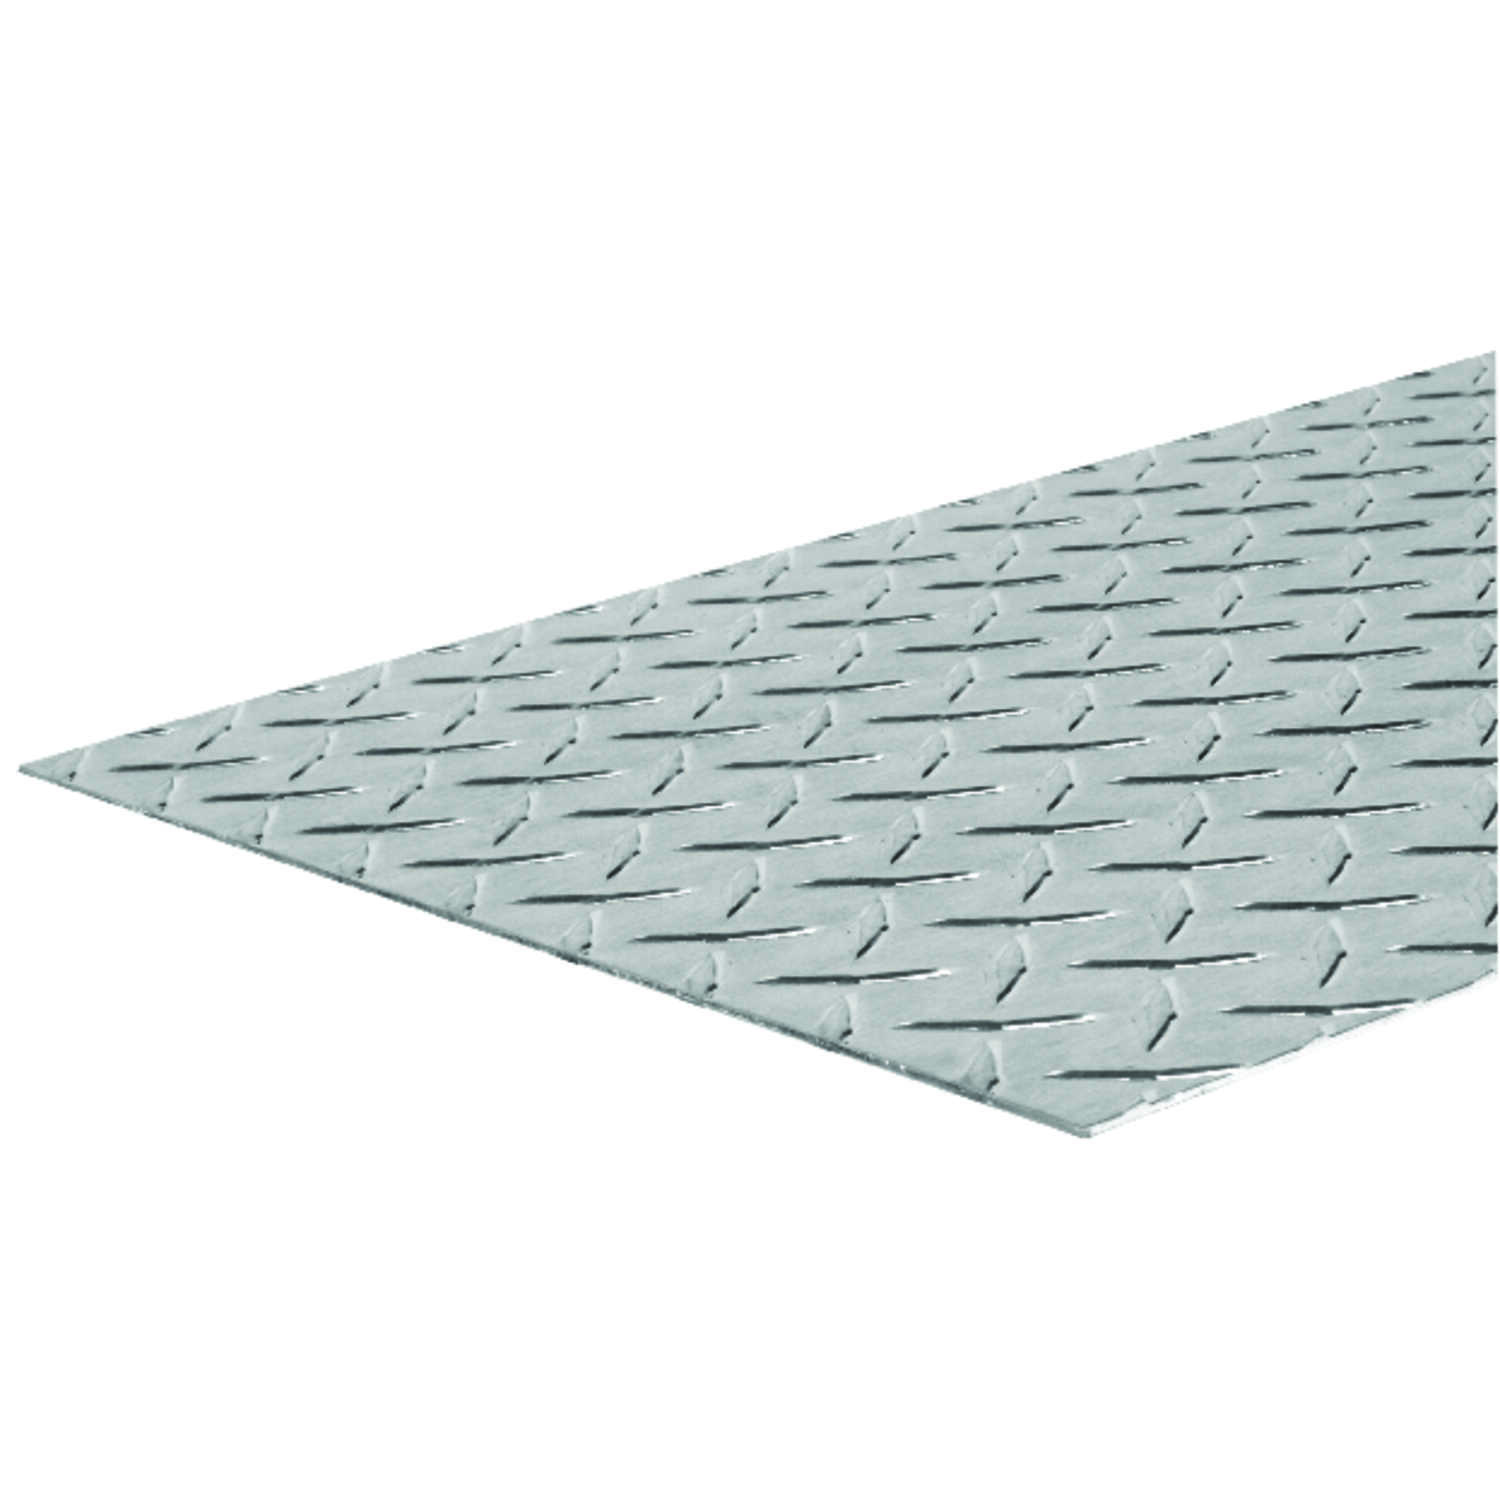 Boltmaster  Uncoated  24 in. Diamond Tread Plate  Steel